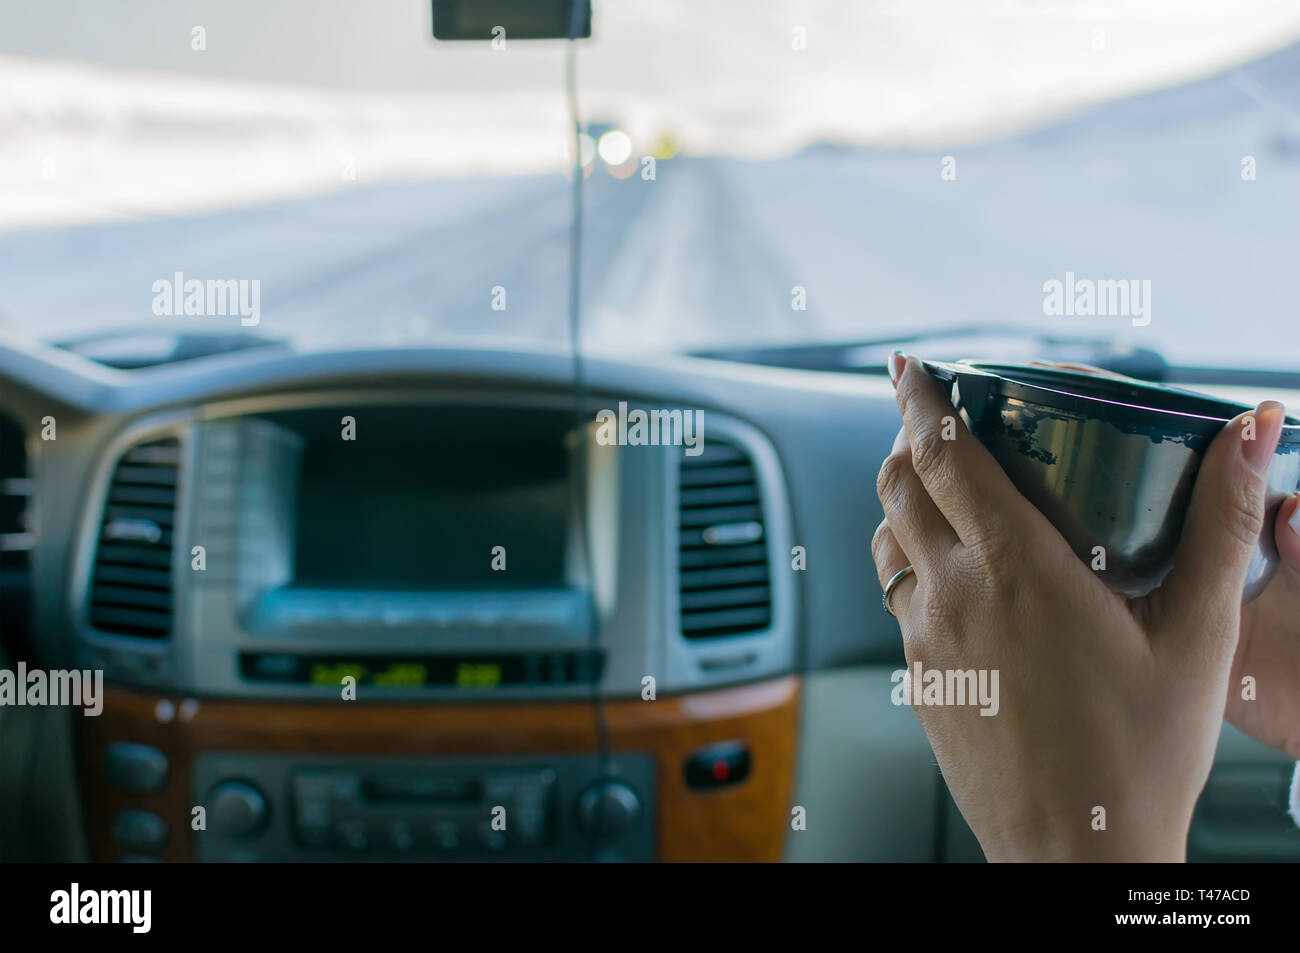 the hand of the girl in the passenger seat of the car holding hot tea from the mug from the thermos - Stock Image